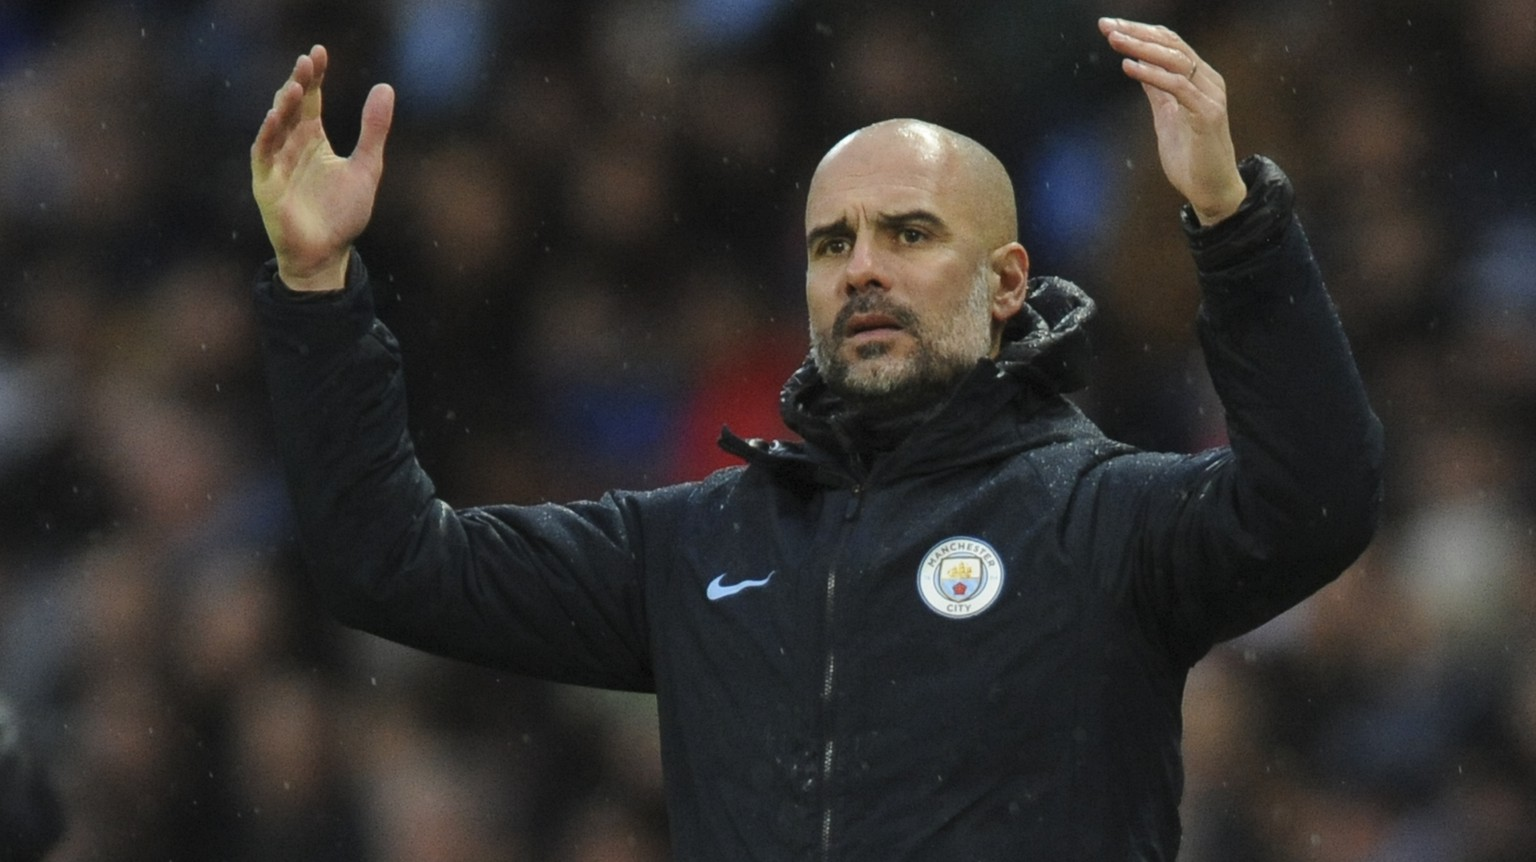 Manchester City manager Josep Guardiola reacts during the FA Cup 4th round soccer match between Manchester City and Burnley at Etihad stadium in Manchester, England, Saturday, Jan. 26, 2019. (AP Photo/Rui Vieira)